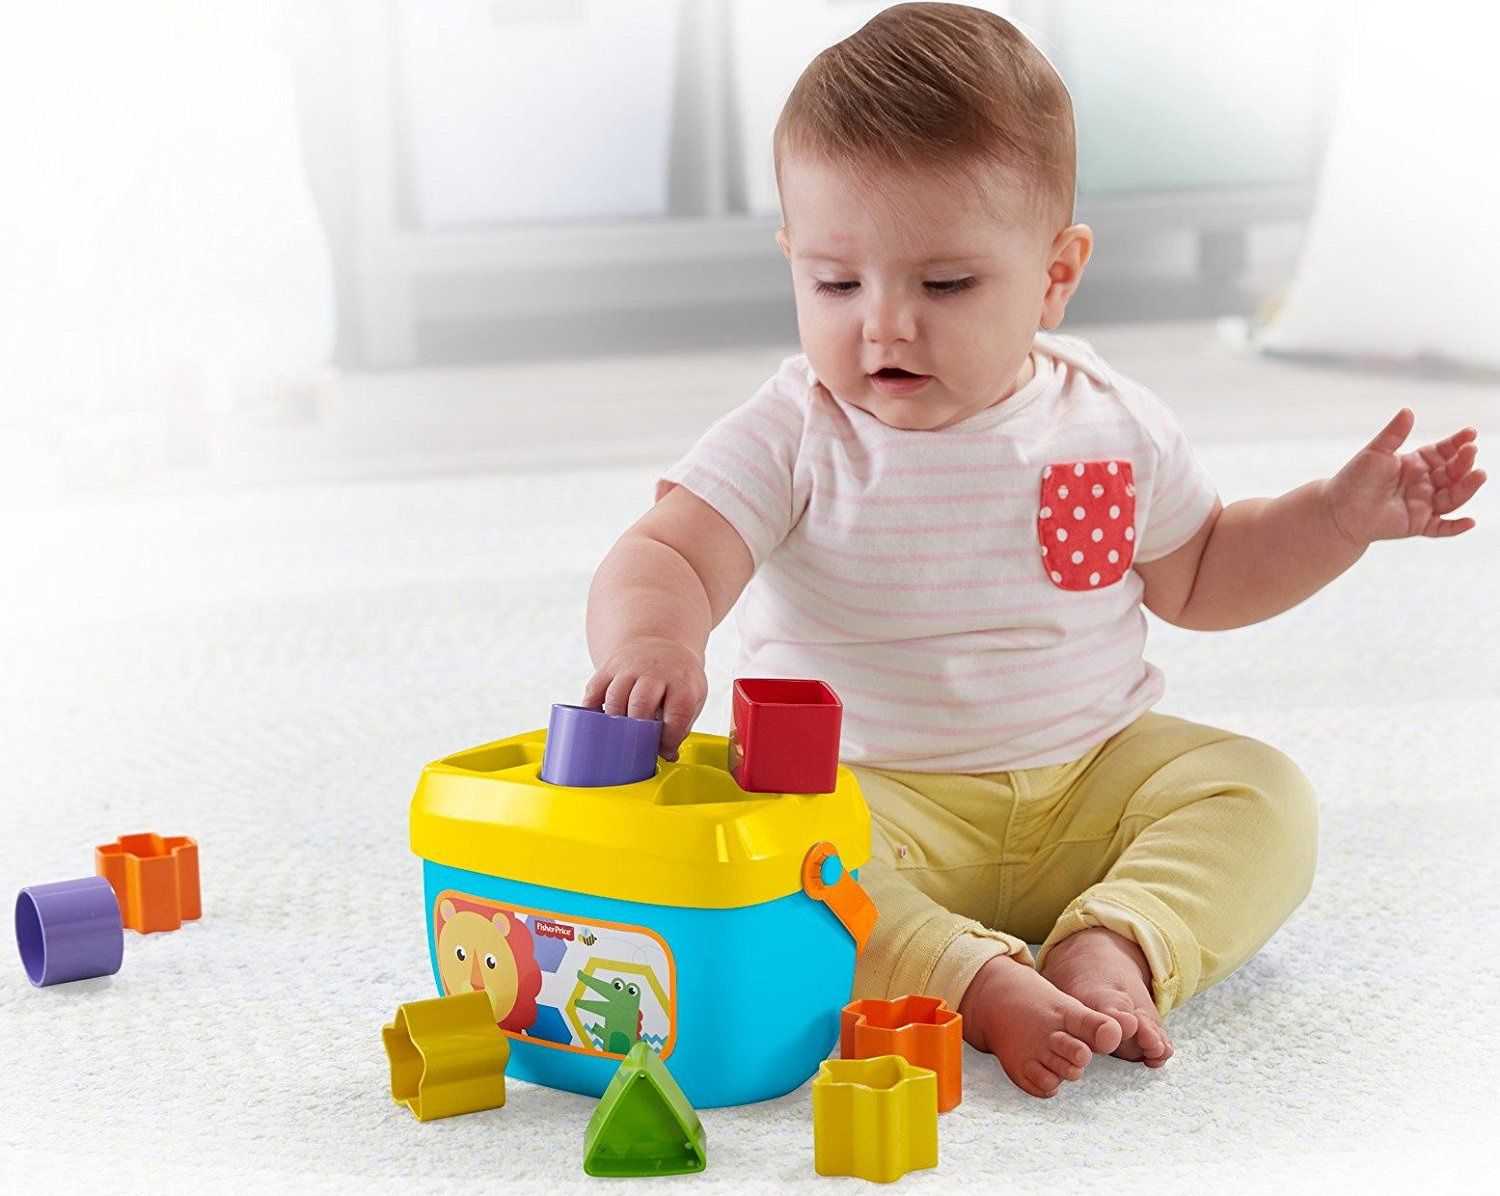 Toddler Development Toys : Best early development toys every baby should have oh